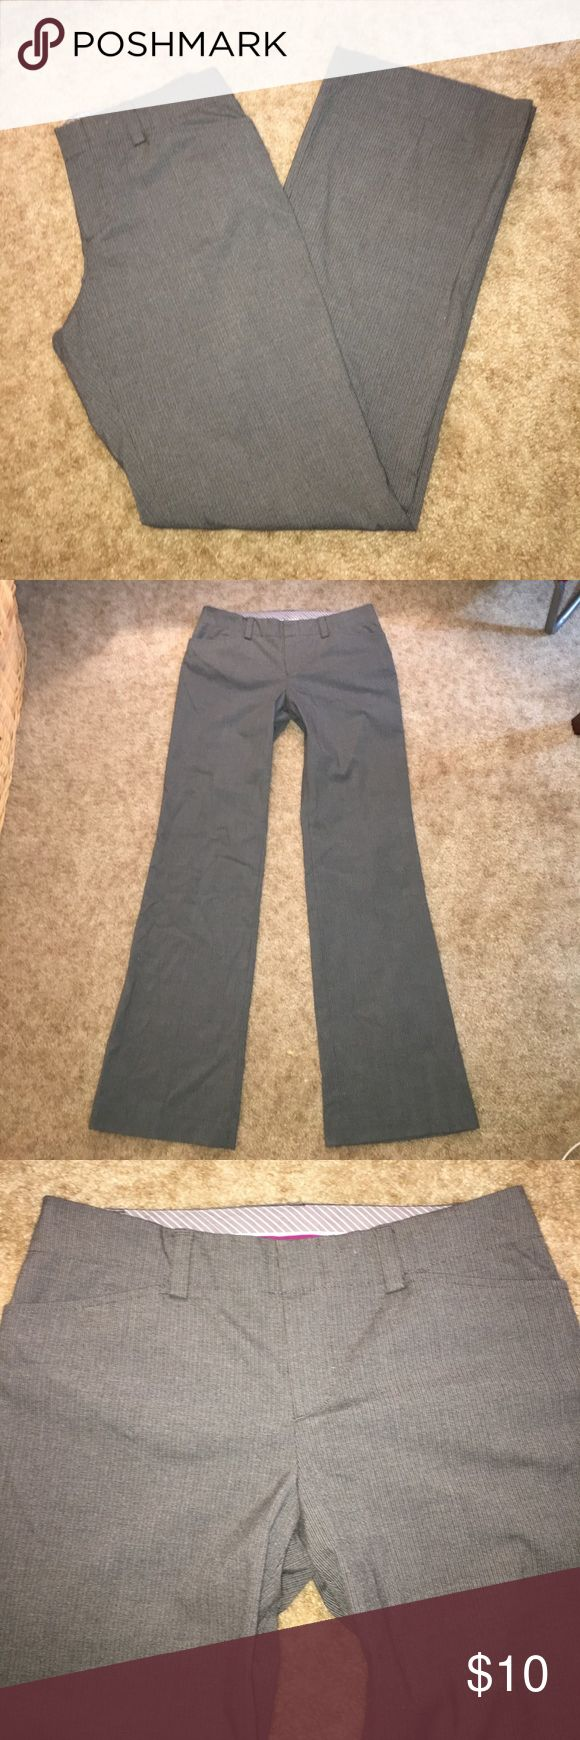 GAP Curvy Fit Dress Pants Wide leg opening grey dress pants with hint of pinstriping. In excellent condition, these are a size 6 LONG. GAP Pants Trousers